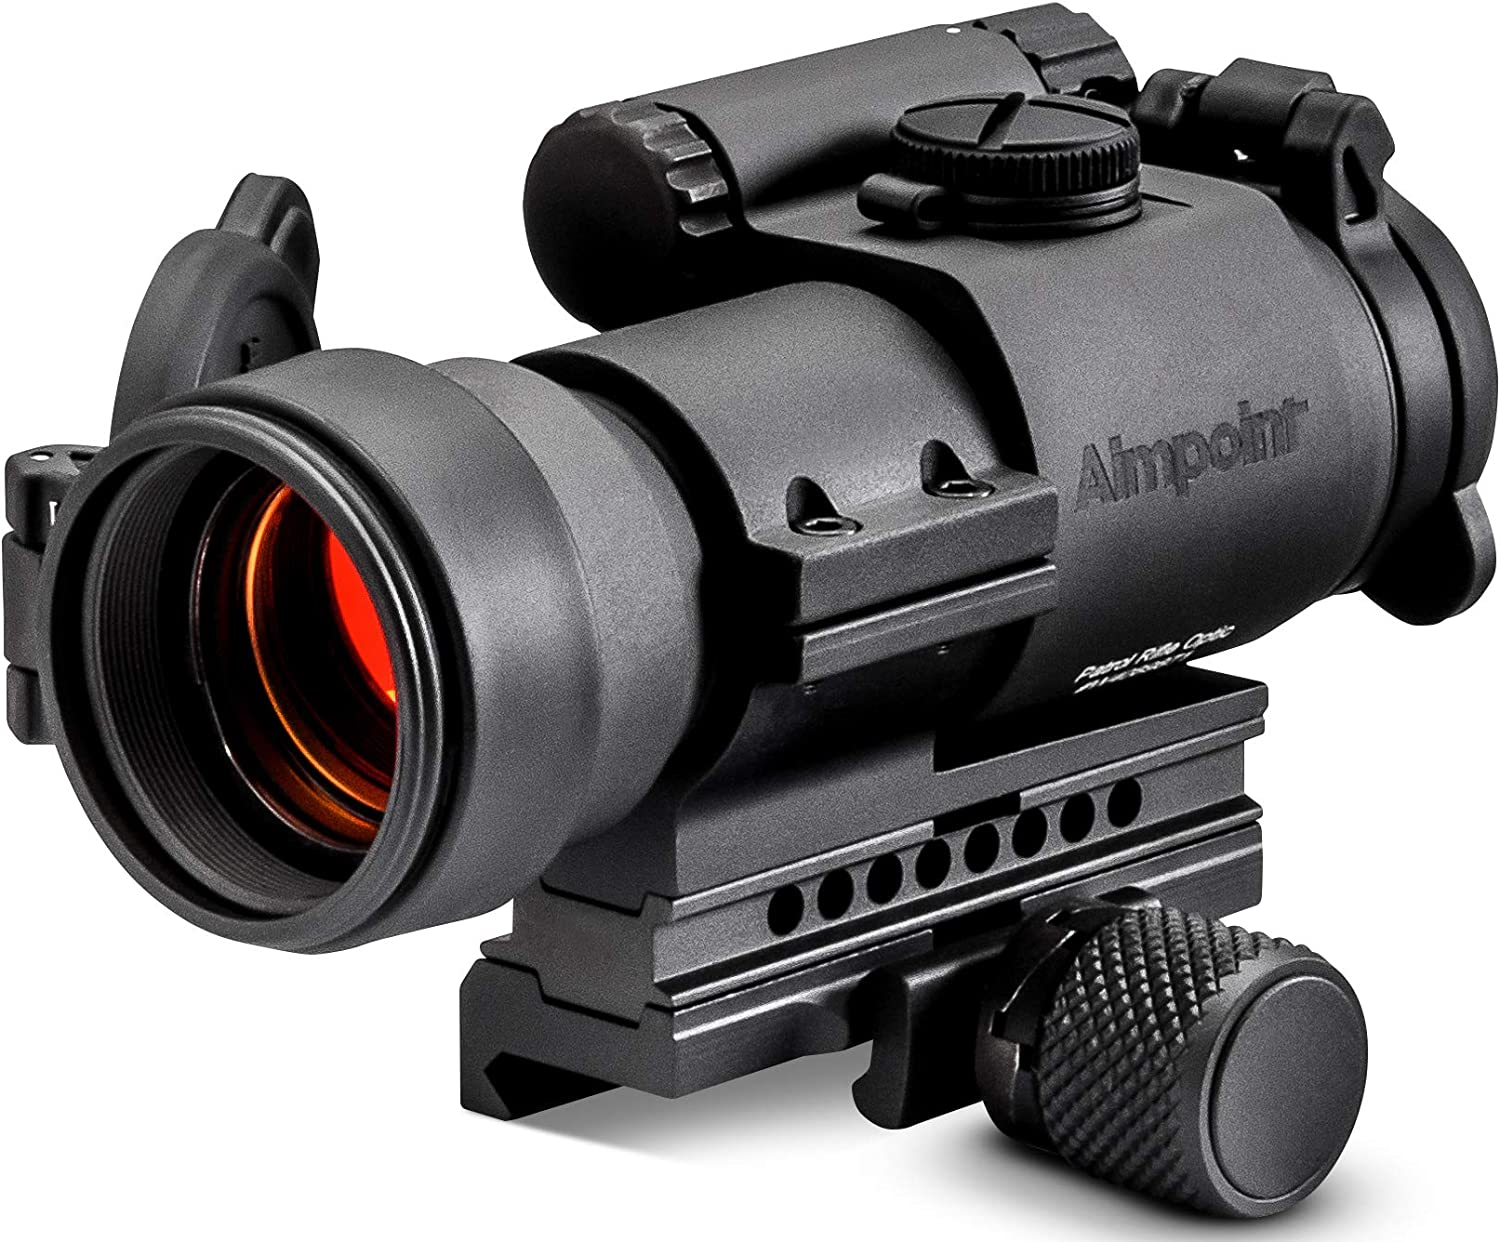 Top 10 Best Red Dot Sight Reviews in 2020 & Buying Guide 6